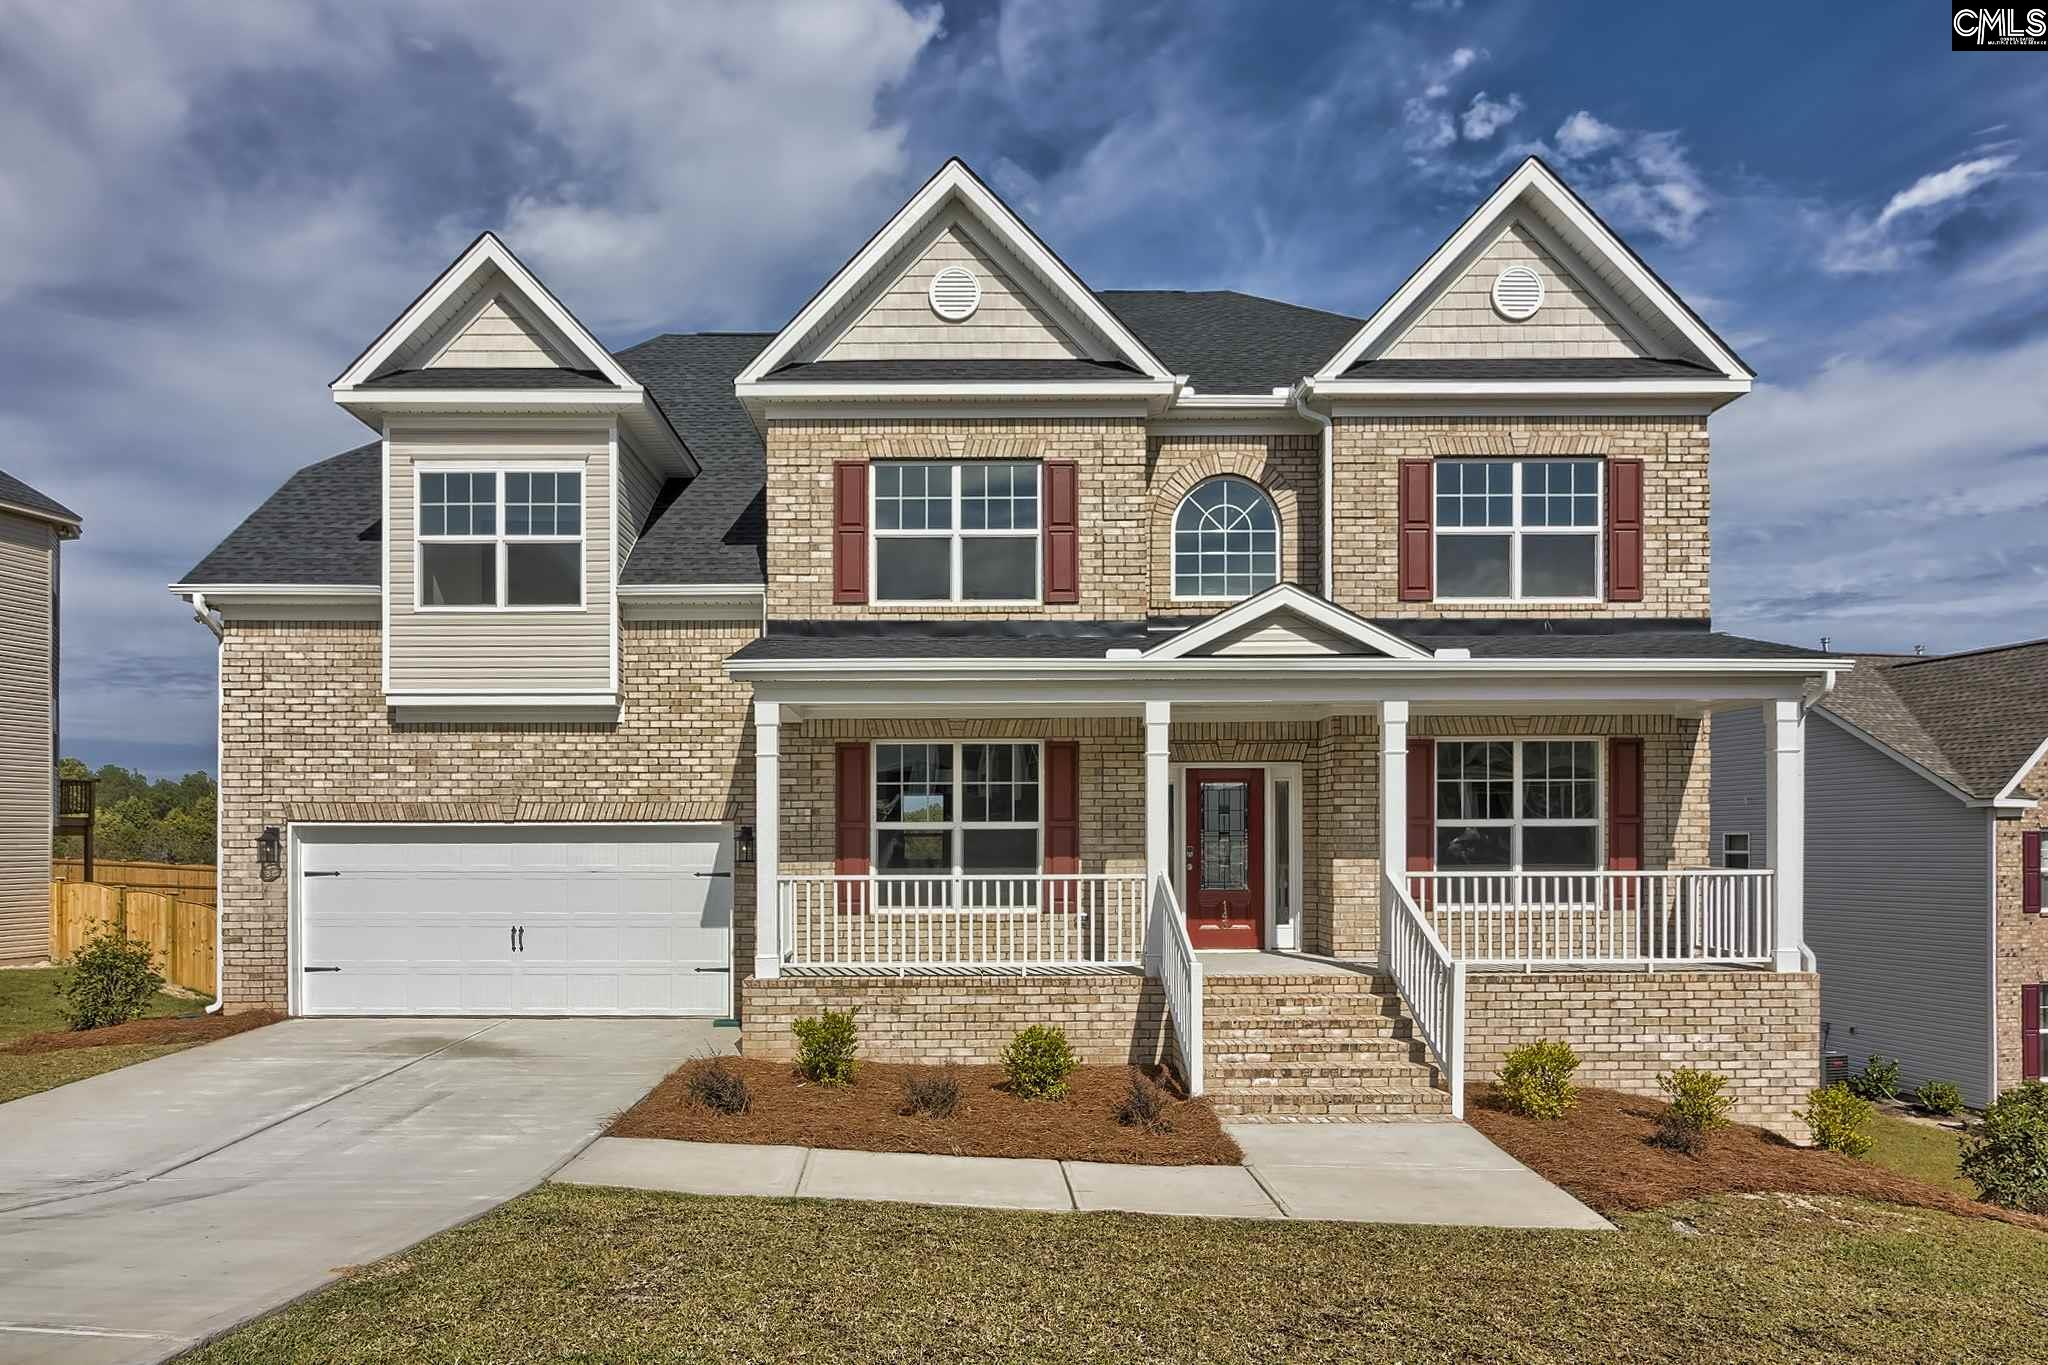 143 Kelsney Ridge Elgin, SC 29045